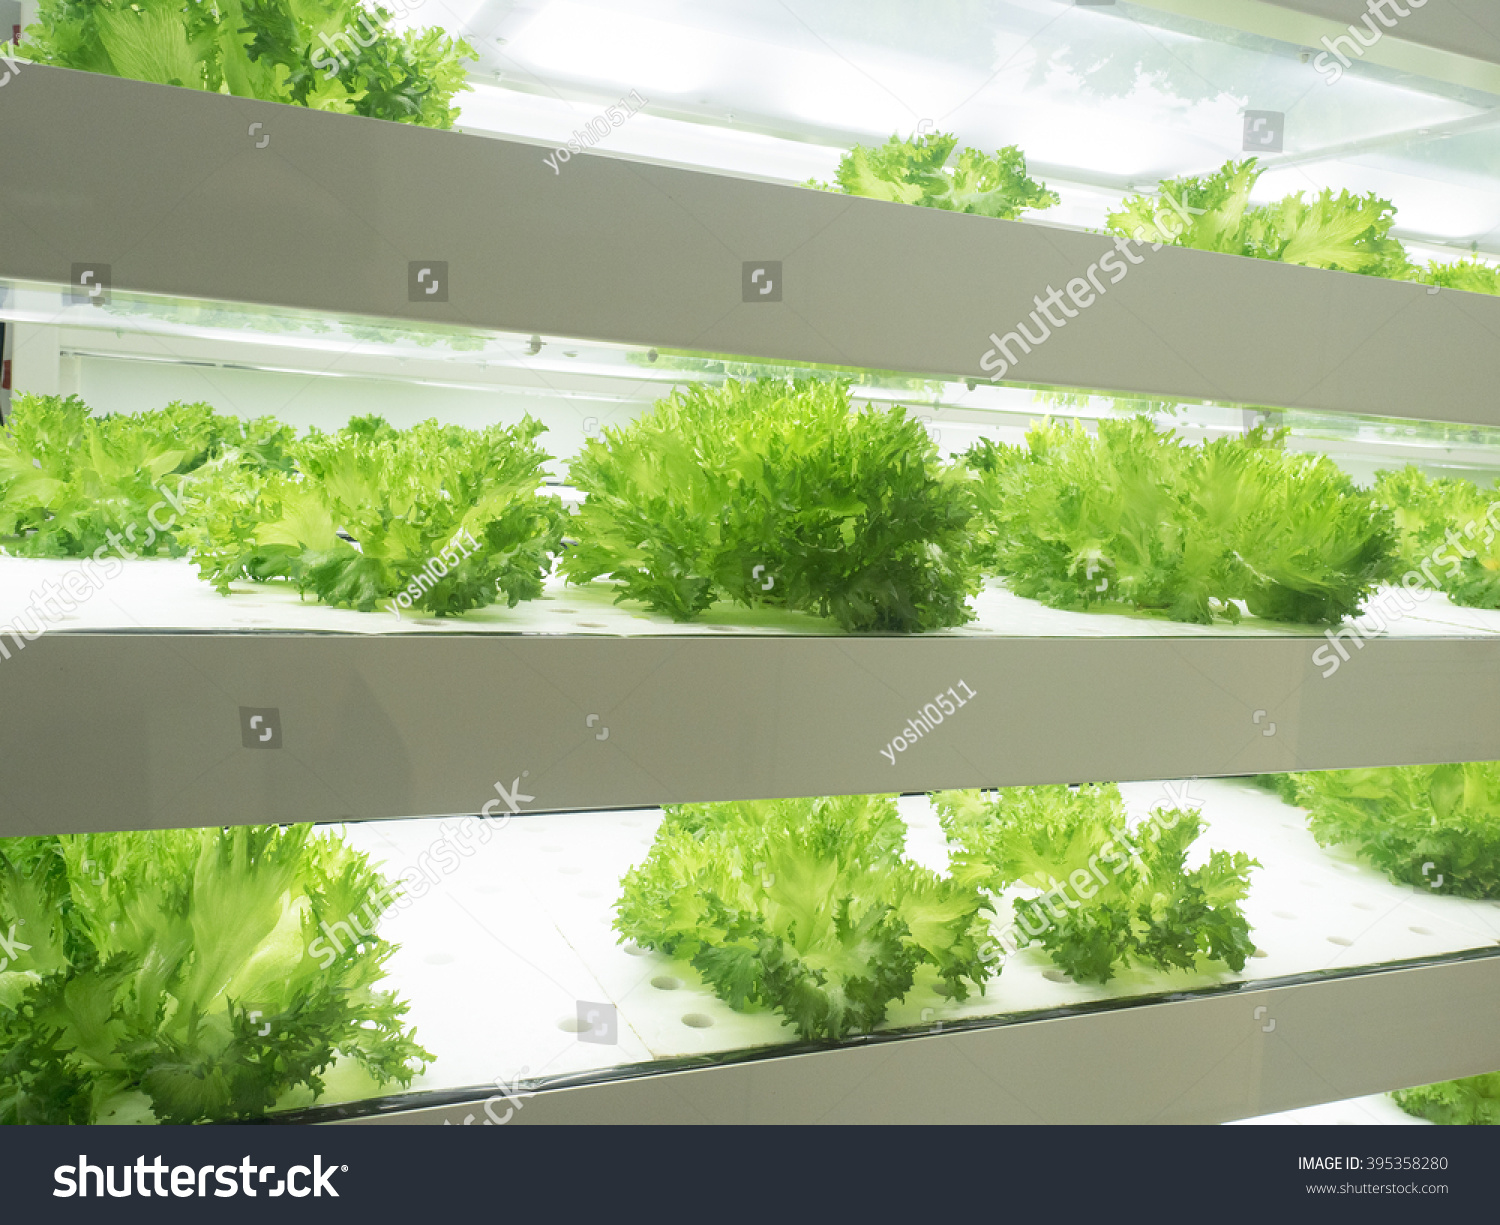 indoor vegetable factory stock photo 395358280 shutterstock. Black Bedroom Furniture Sets. Home Design Ideas